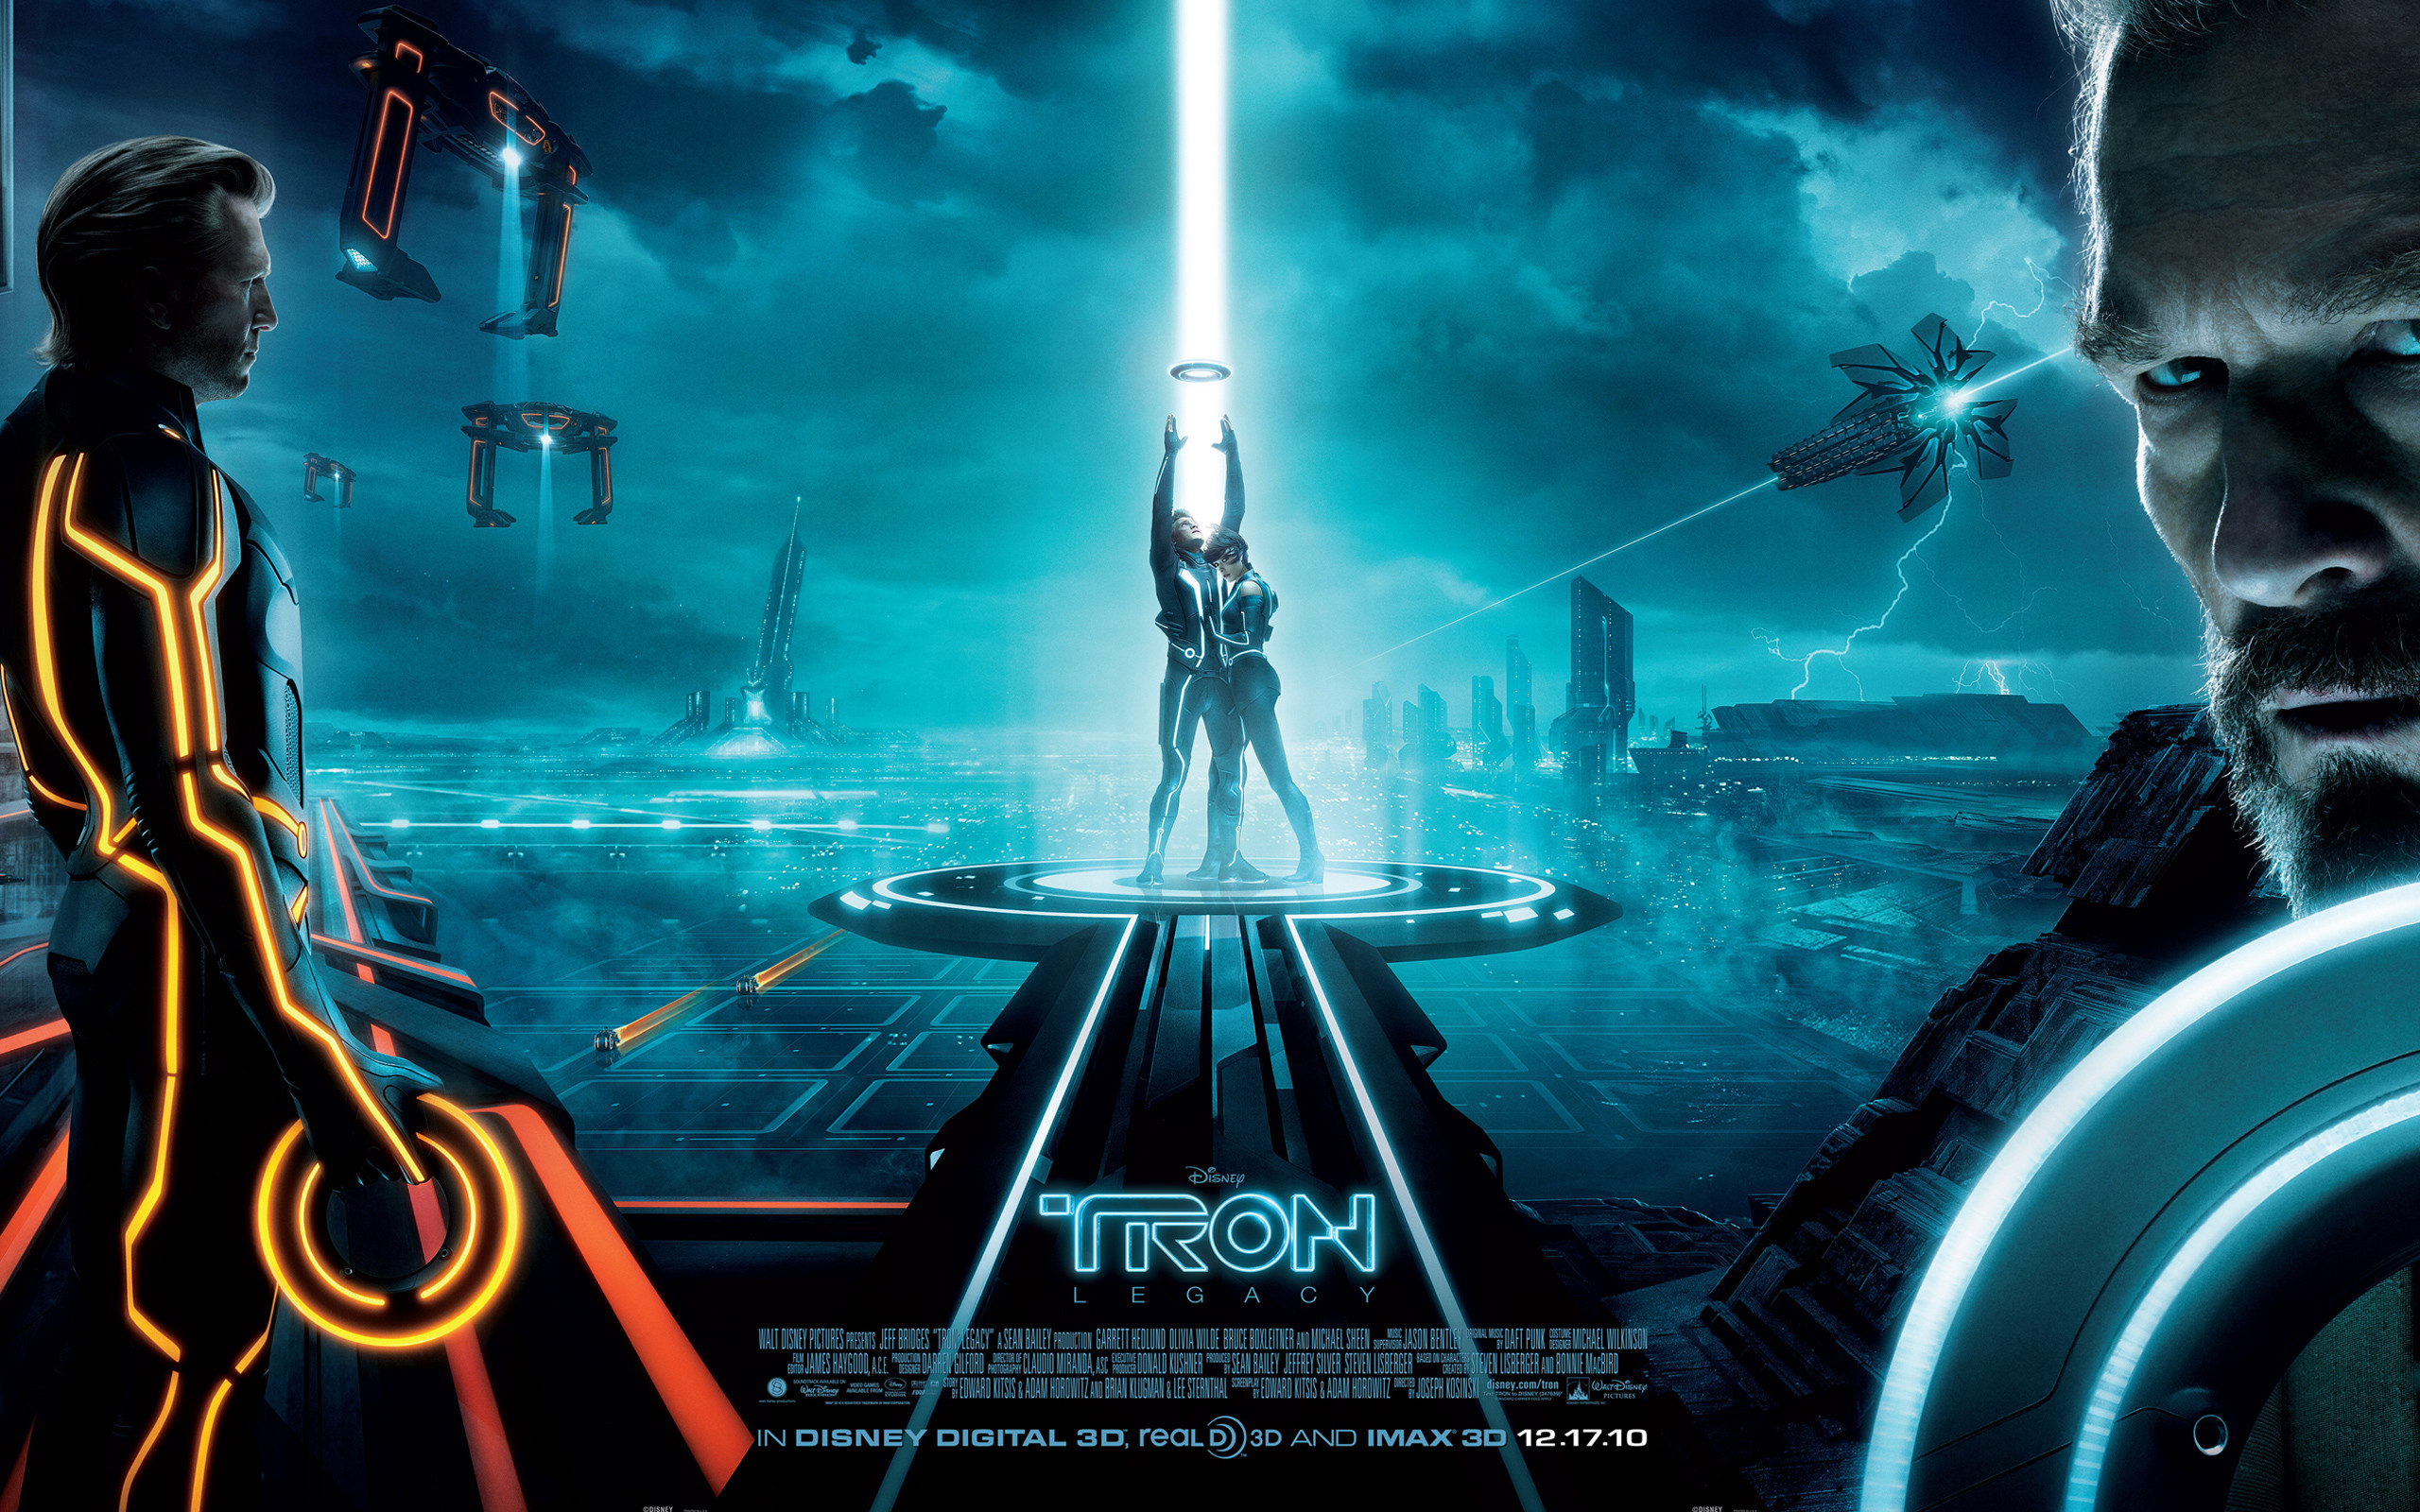 2560x1600 Wallpaper picture of the main characters from Disney's Tron: Legacy movie:  Clu, Sam Flynn, Quorra and Kevin Flynn. See all Tron: